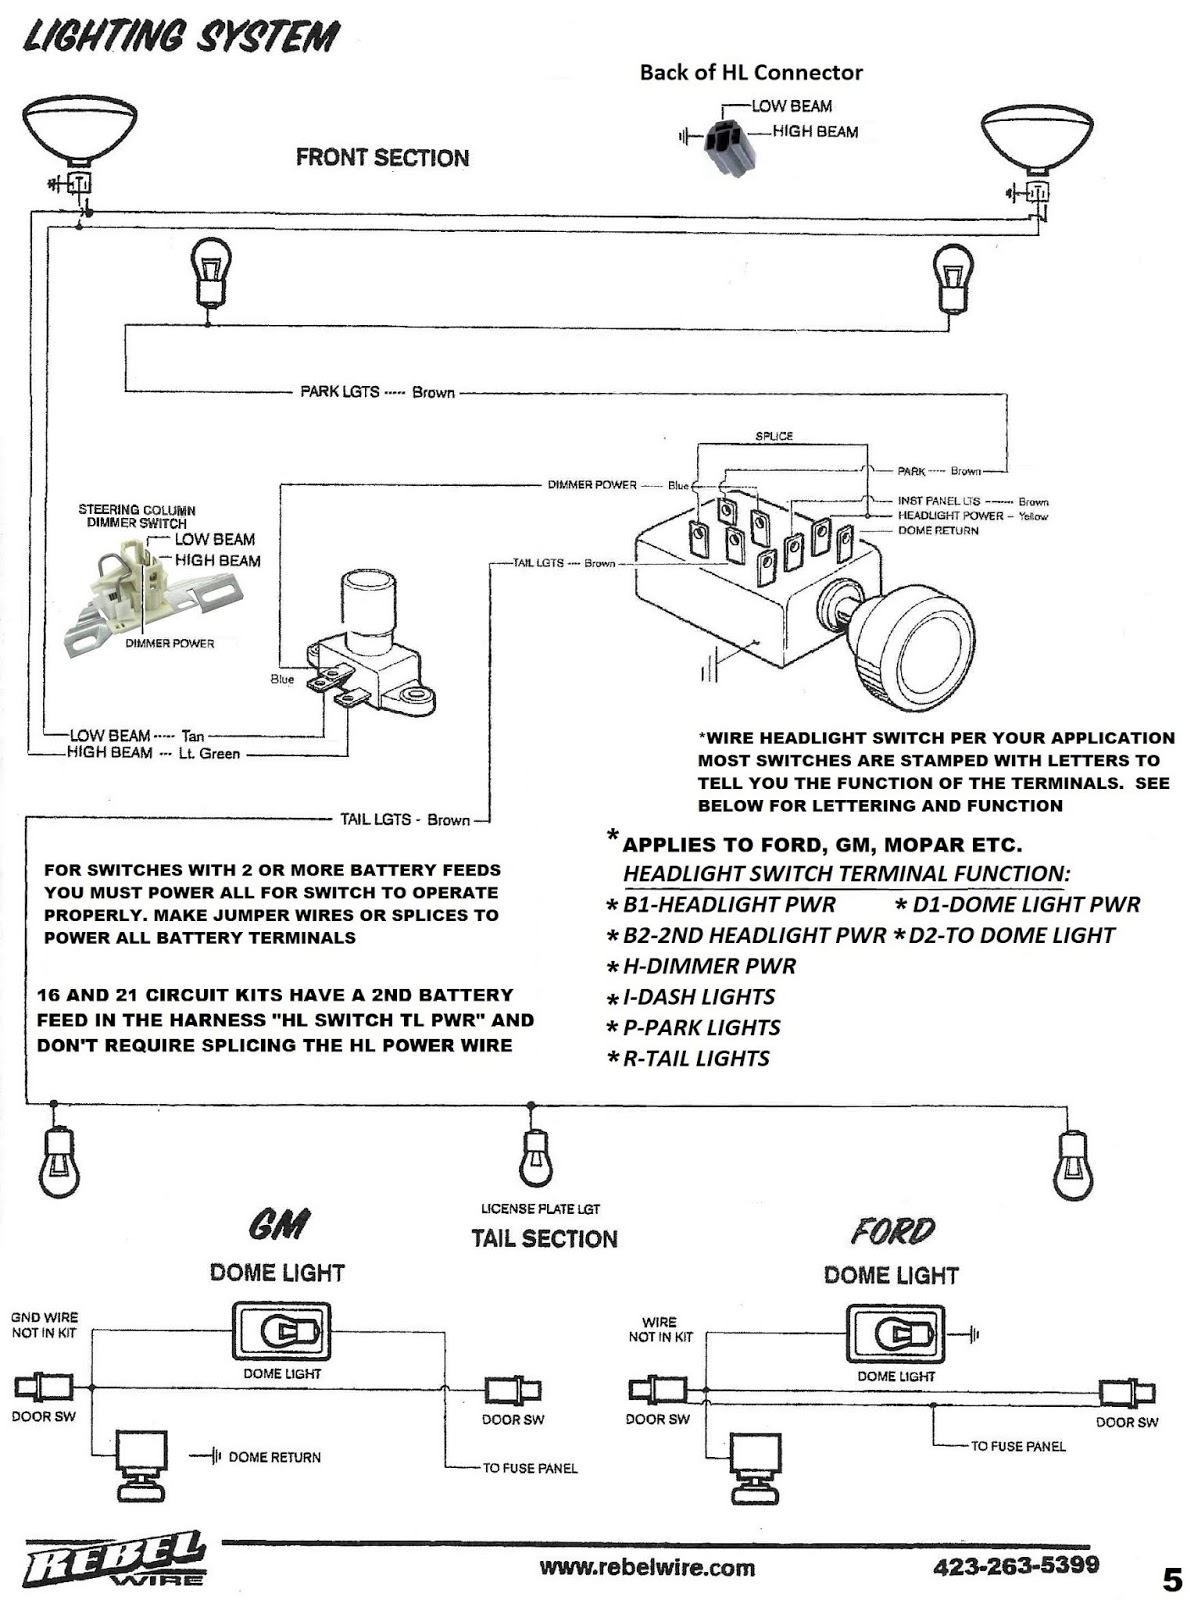 Gm Dimmer Switch Wiring Diagram - Wiring Diagrams on